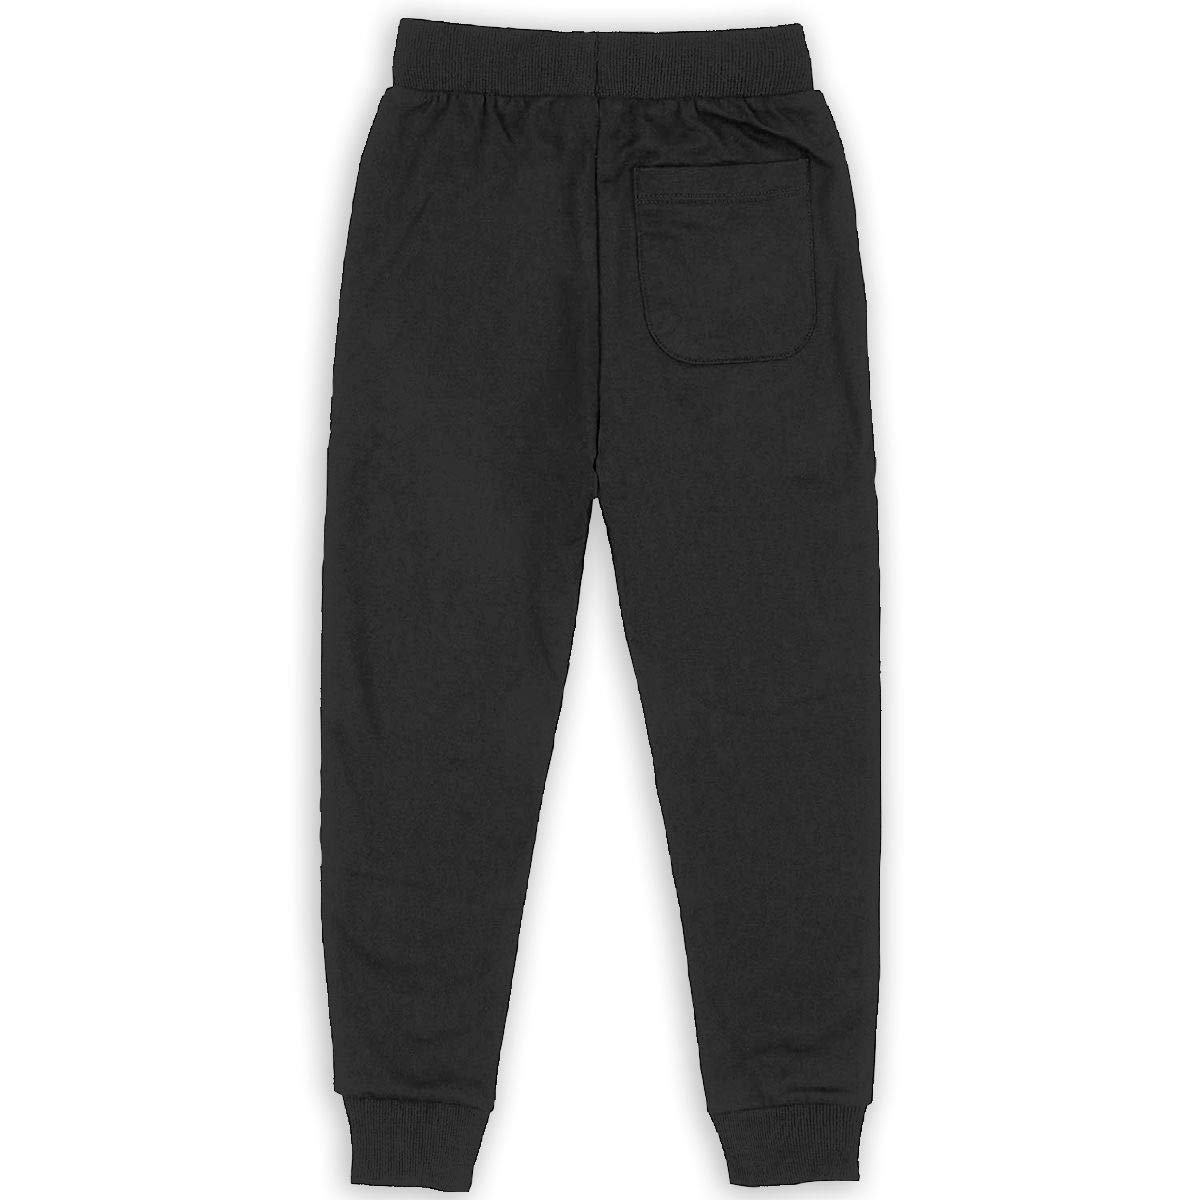 Its Like OCD Boys Big Active Basic Casual Pants Sweatpants for Boys Black Kim Mittelstaedt I Have CDO